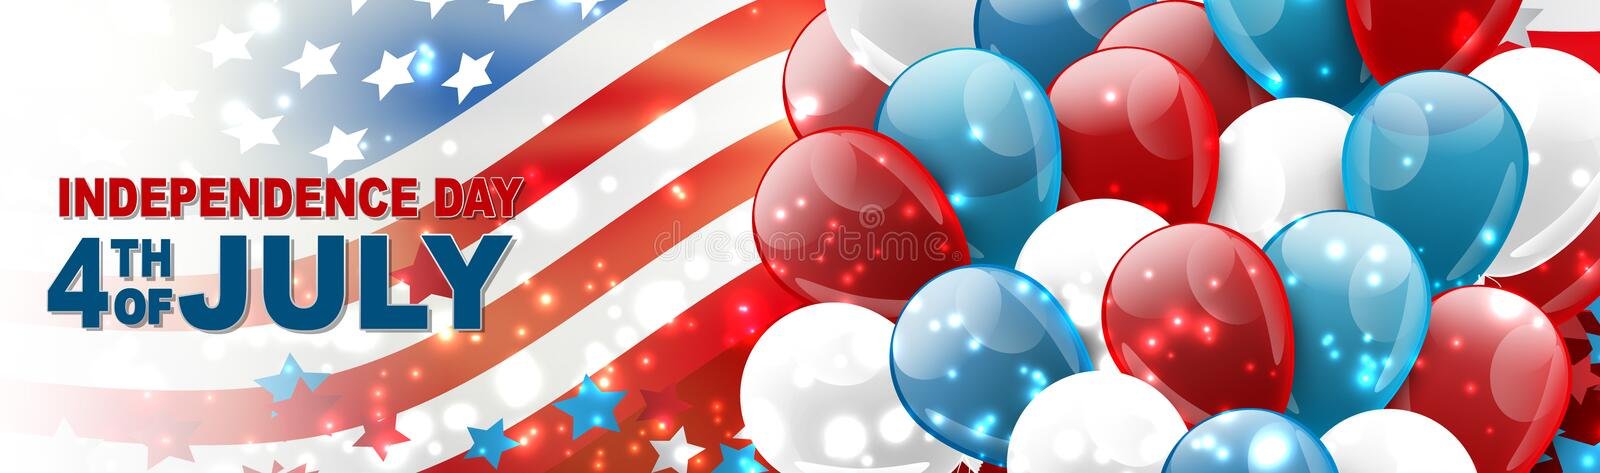 4th of July United States national Independence Day celebration banner with blue, red, and white balloons, confetti, stars. And American flag design concept stock illustration